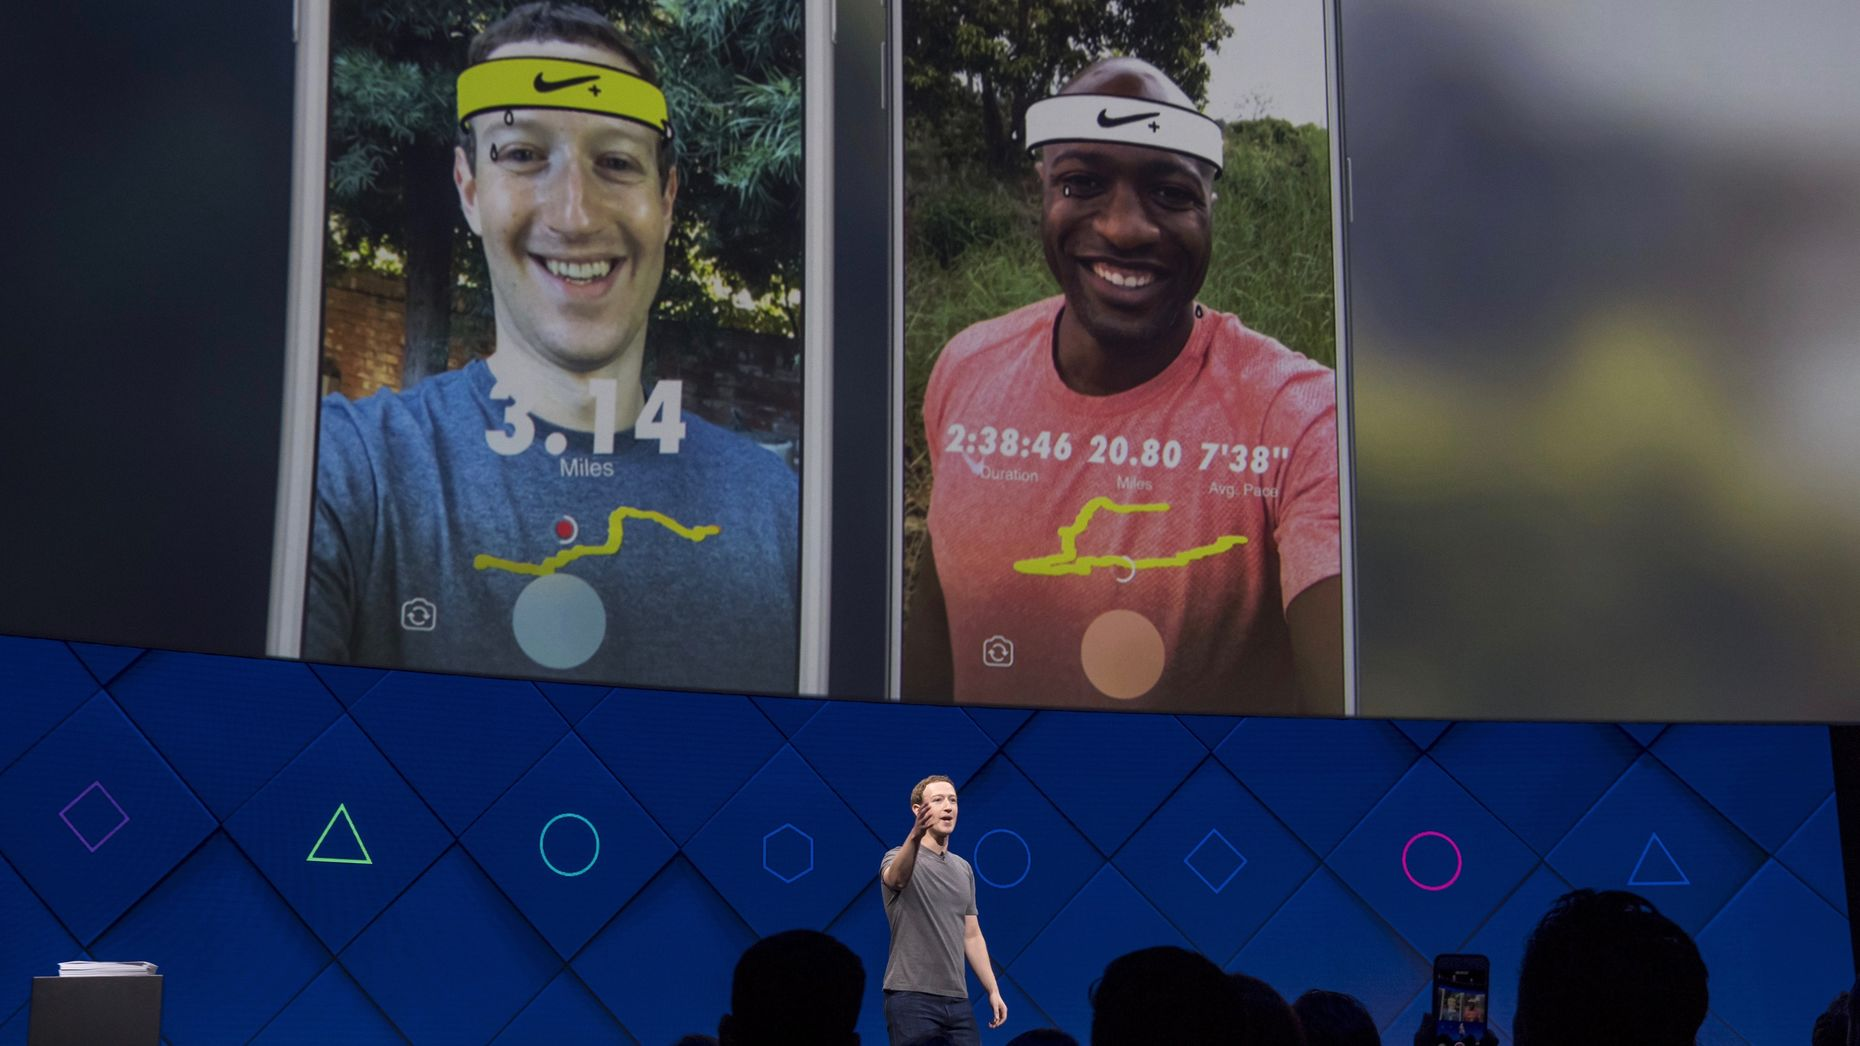 Facebook CEO Mark Zuckerberg showing off new Nike-branded camera effects at this week's F8. Photo by Bloomberg.